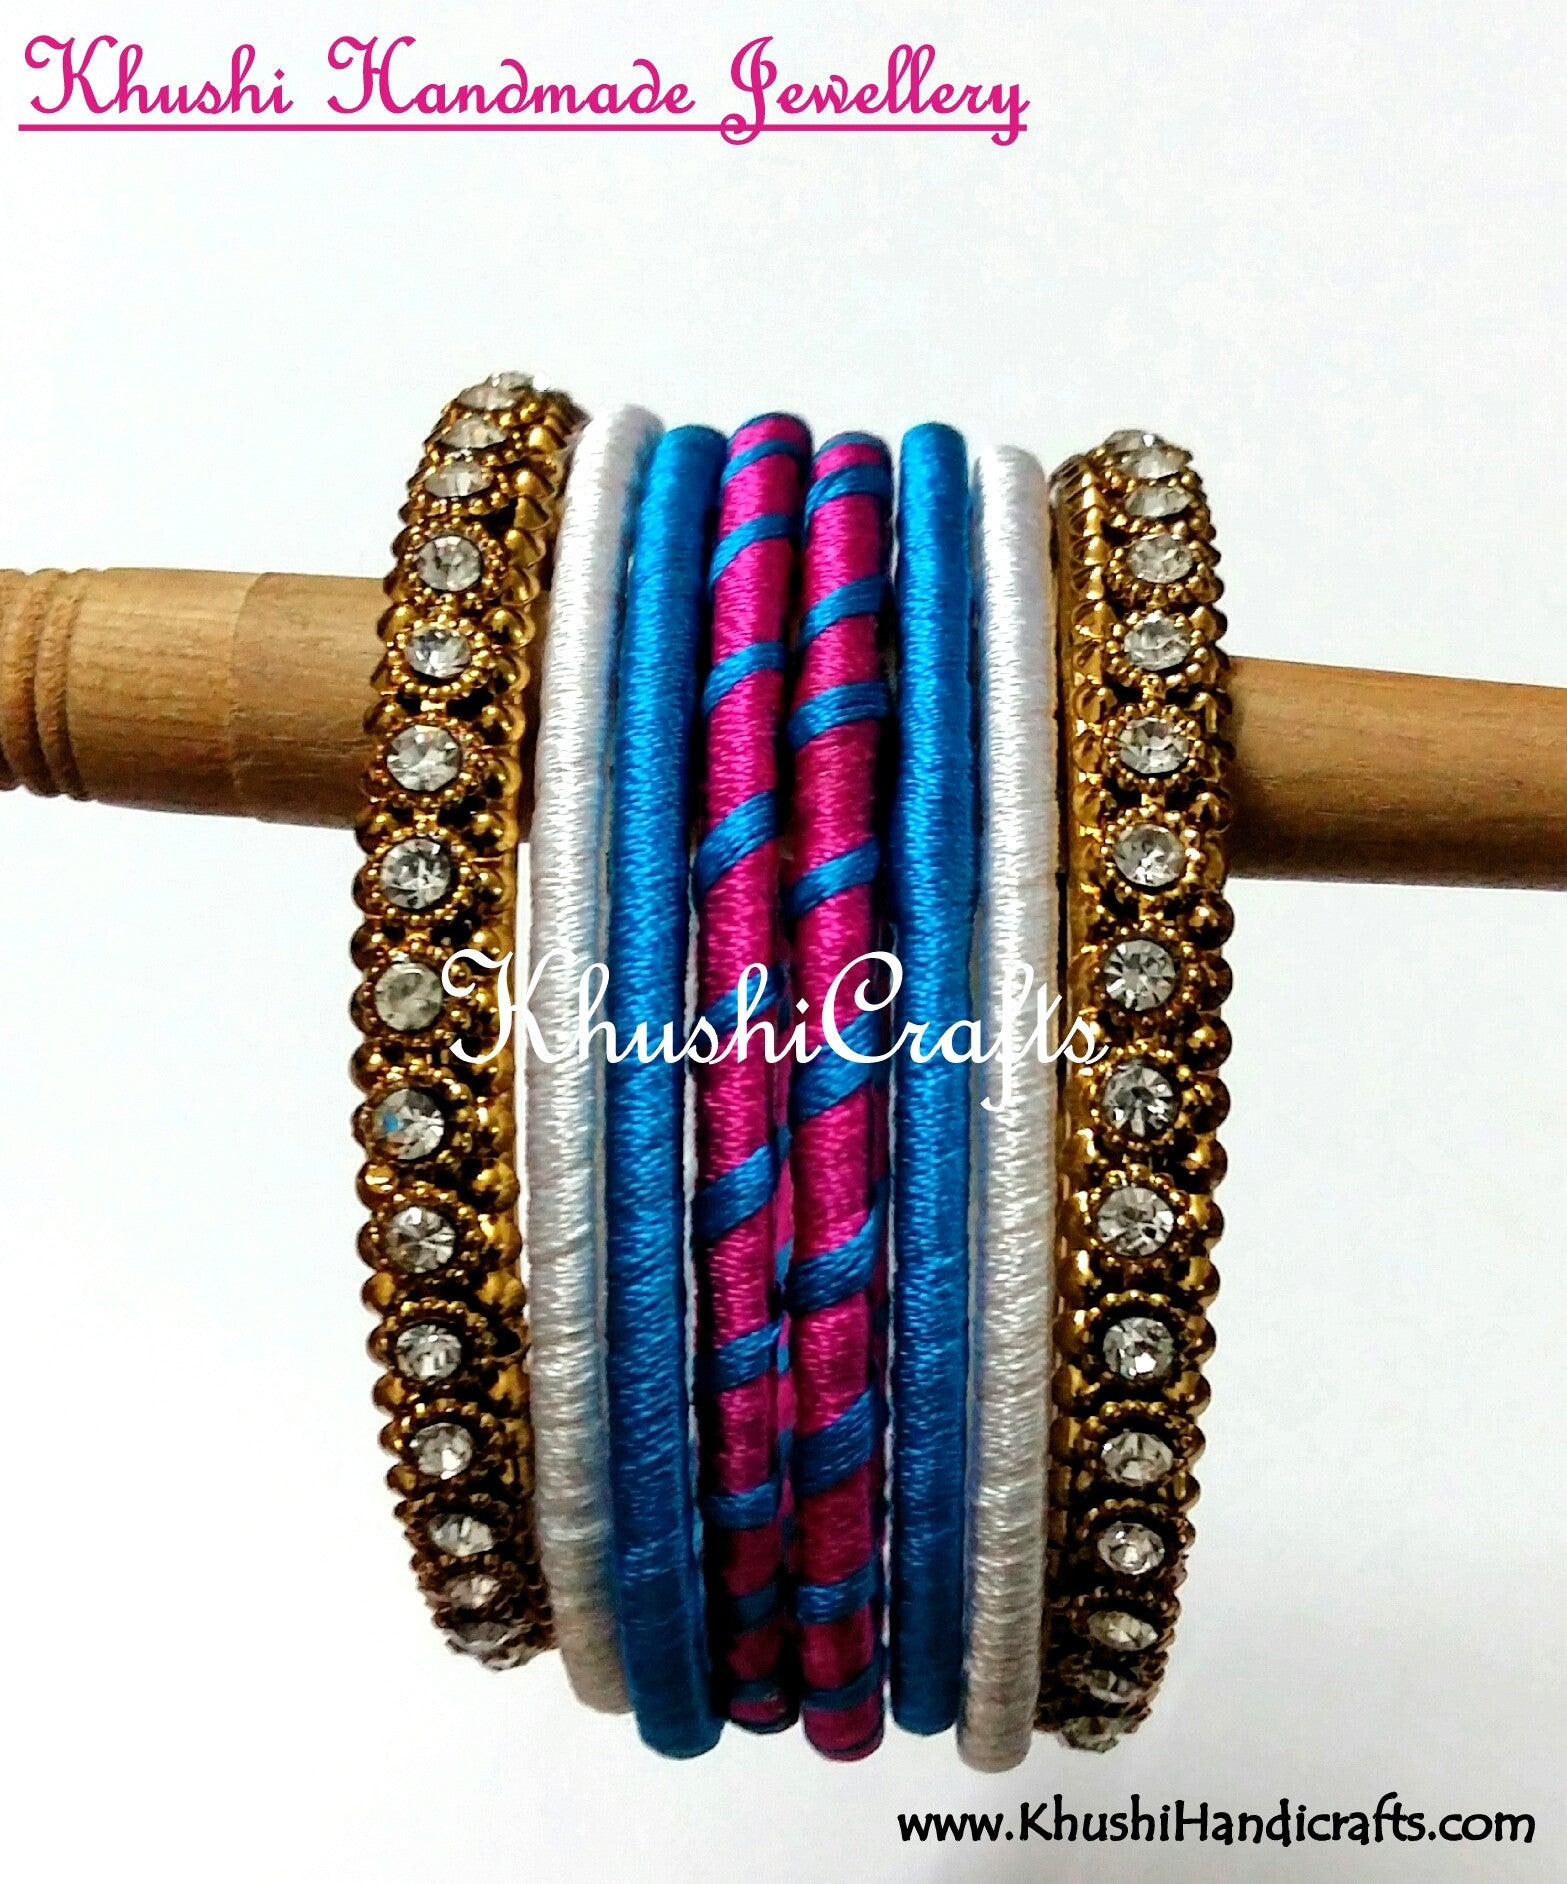 Hand-crafted Stylish Silk Thread Bangles in White Blue and Pink - Khushi Handmade Jewellery